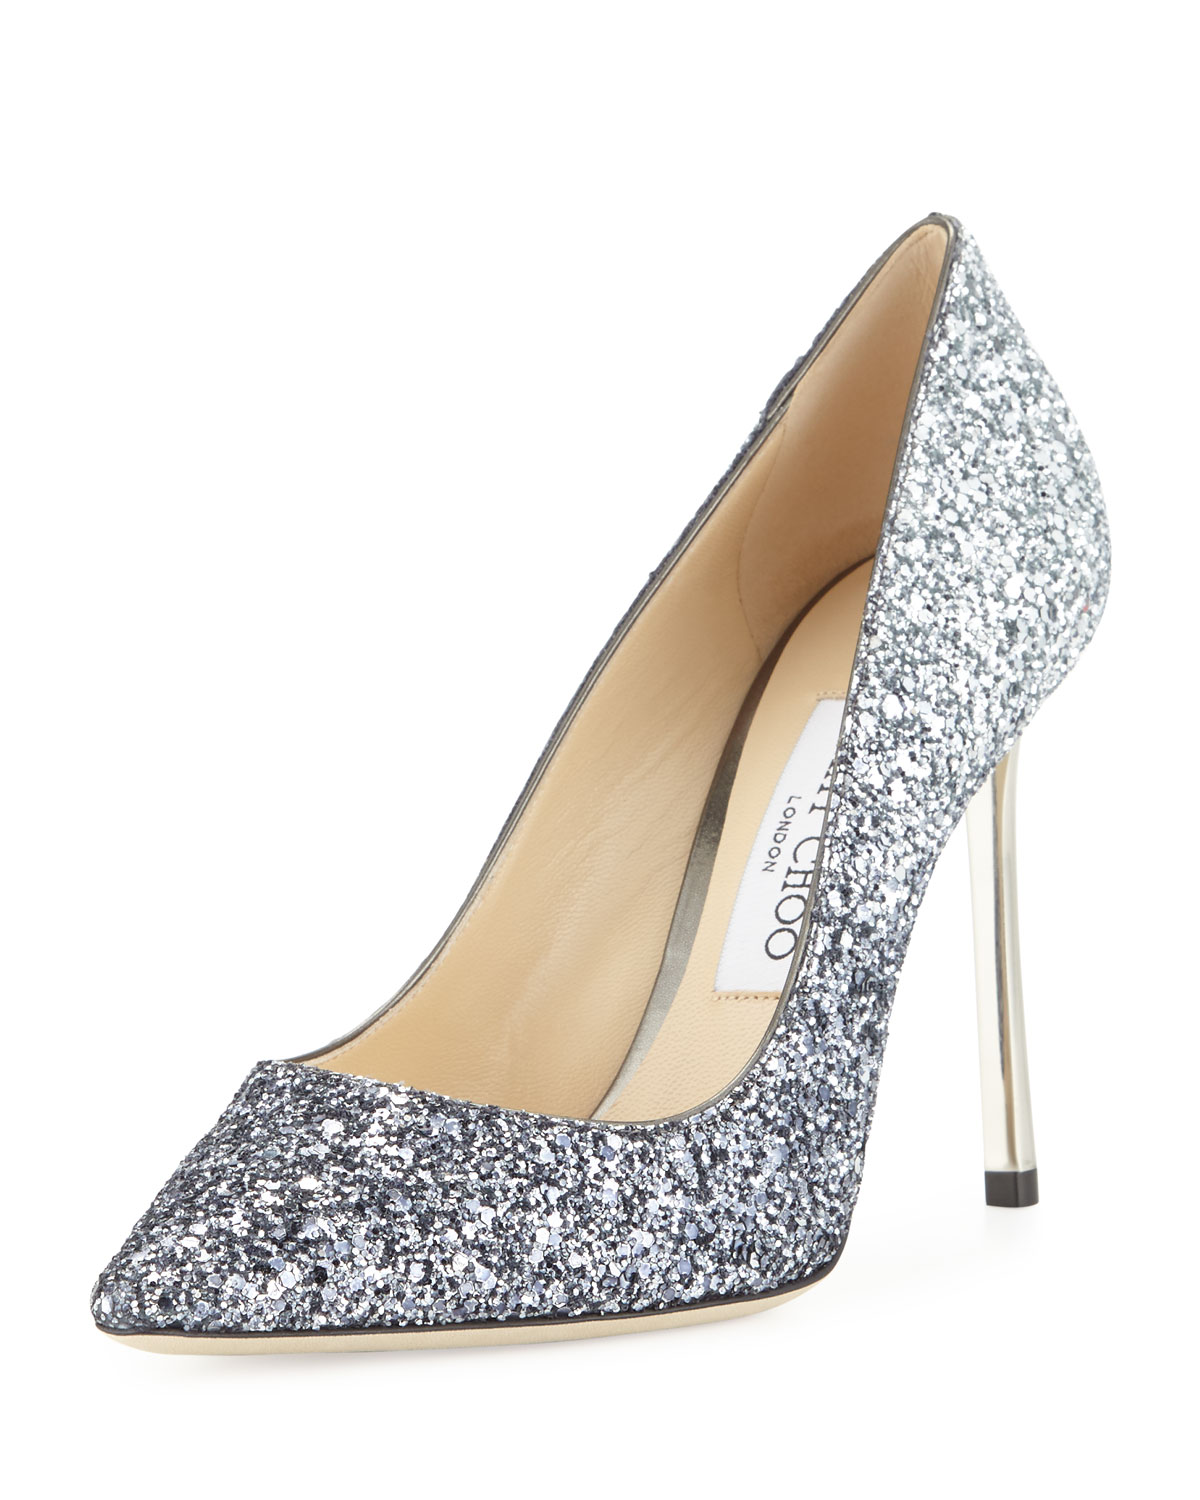 2594259cba0 Jimmy Choo Romy Glitter Pointed-Toe 100mm Pumps